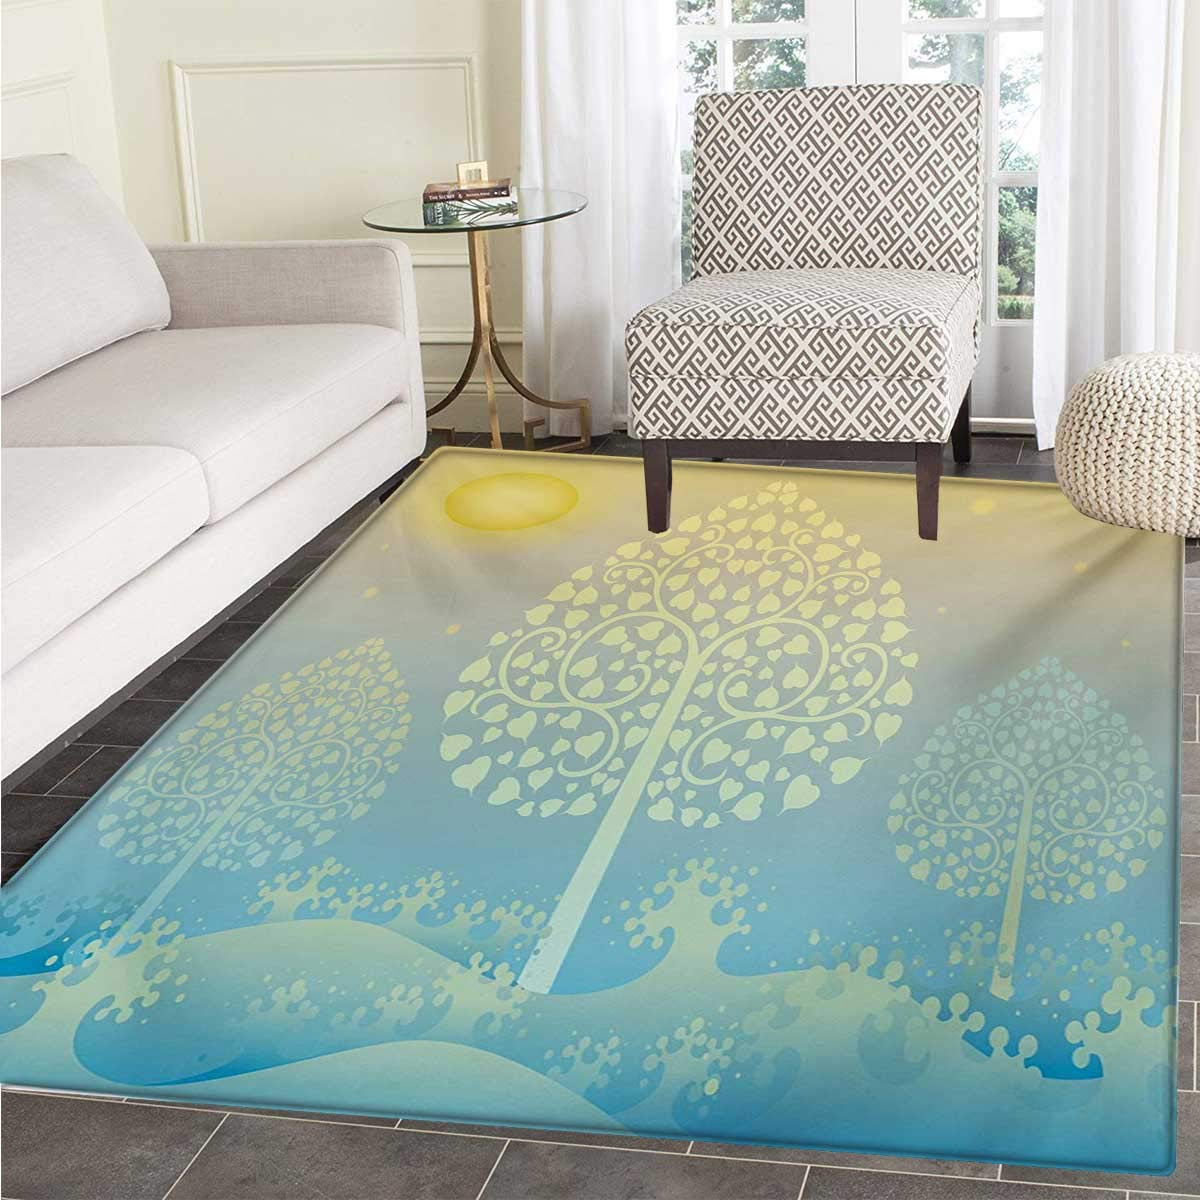 Art Bath Mats Floors Thai Pattern Design Illustration Gold Tree Oriental Culture Asia Eastern Ways Door Mat Indoors Bathroom Mats Non Slip 36''x48'' Gold Sky Blue